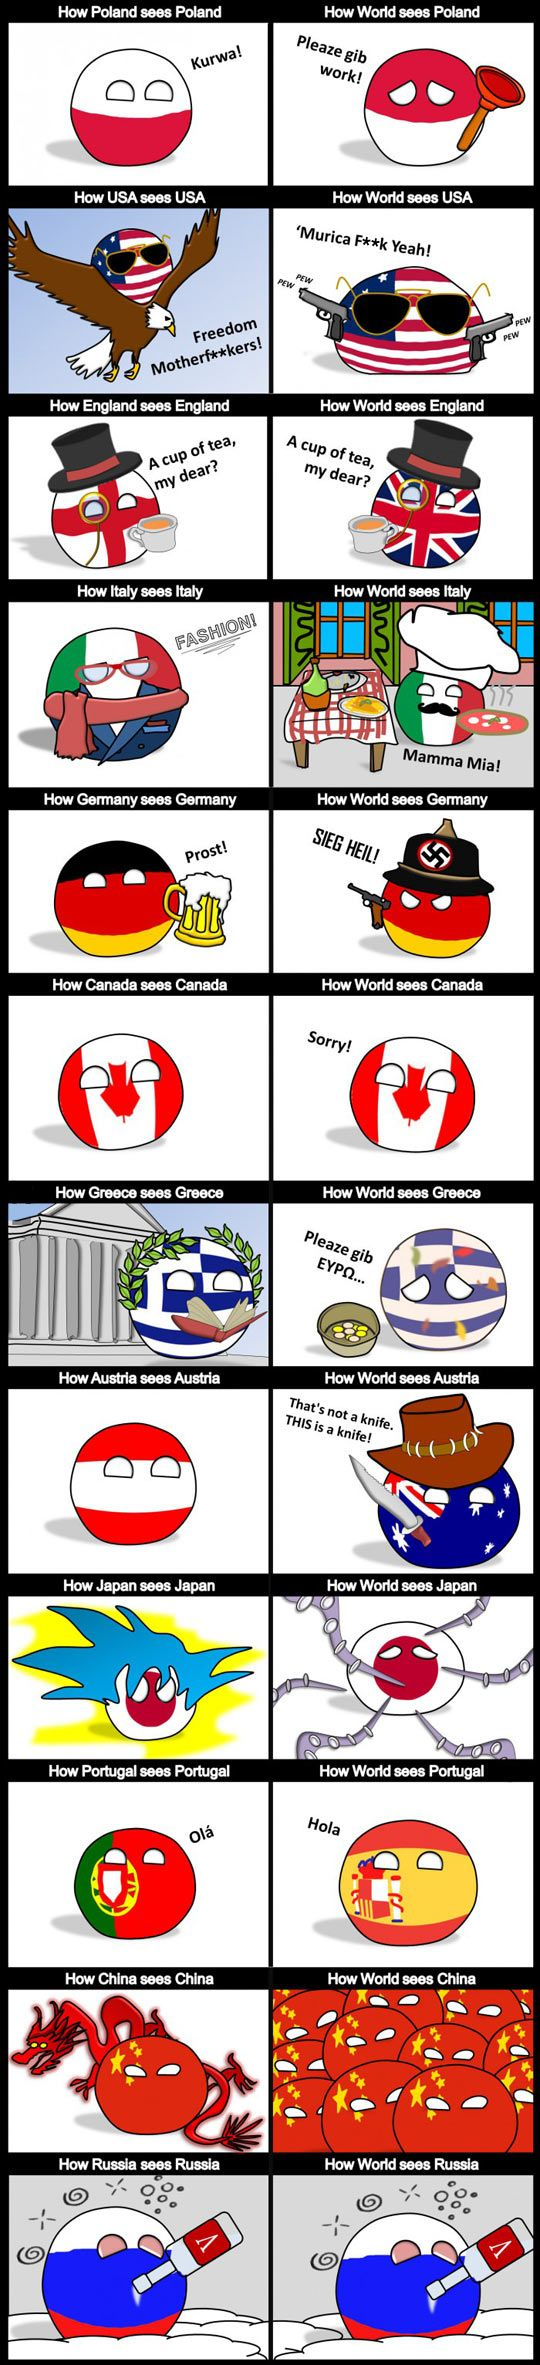 How I see most other countries- pretty accurate. That thing how England sees itself isn't true. We don't really think of ourselves as posh and we aren't just tea obsessed people in suits with hats and umbrellas. That's just a stereotype but it is funny. I can say that how Poland sees itself is quite true XD